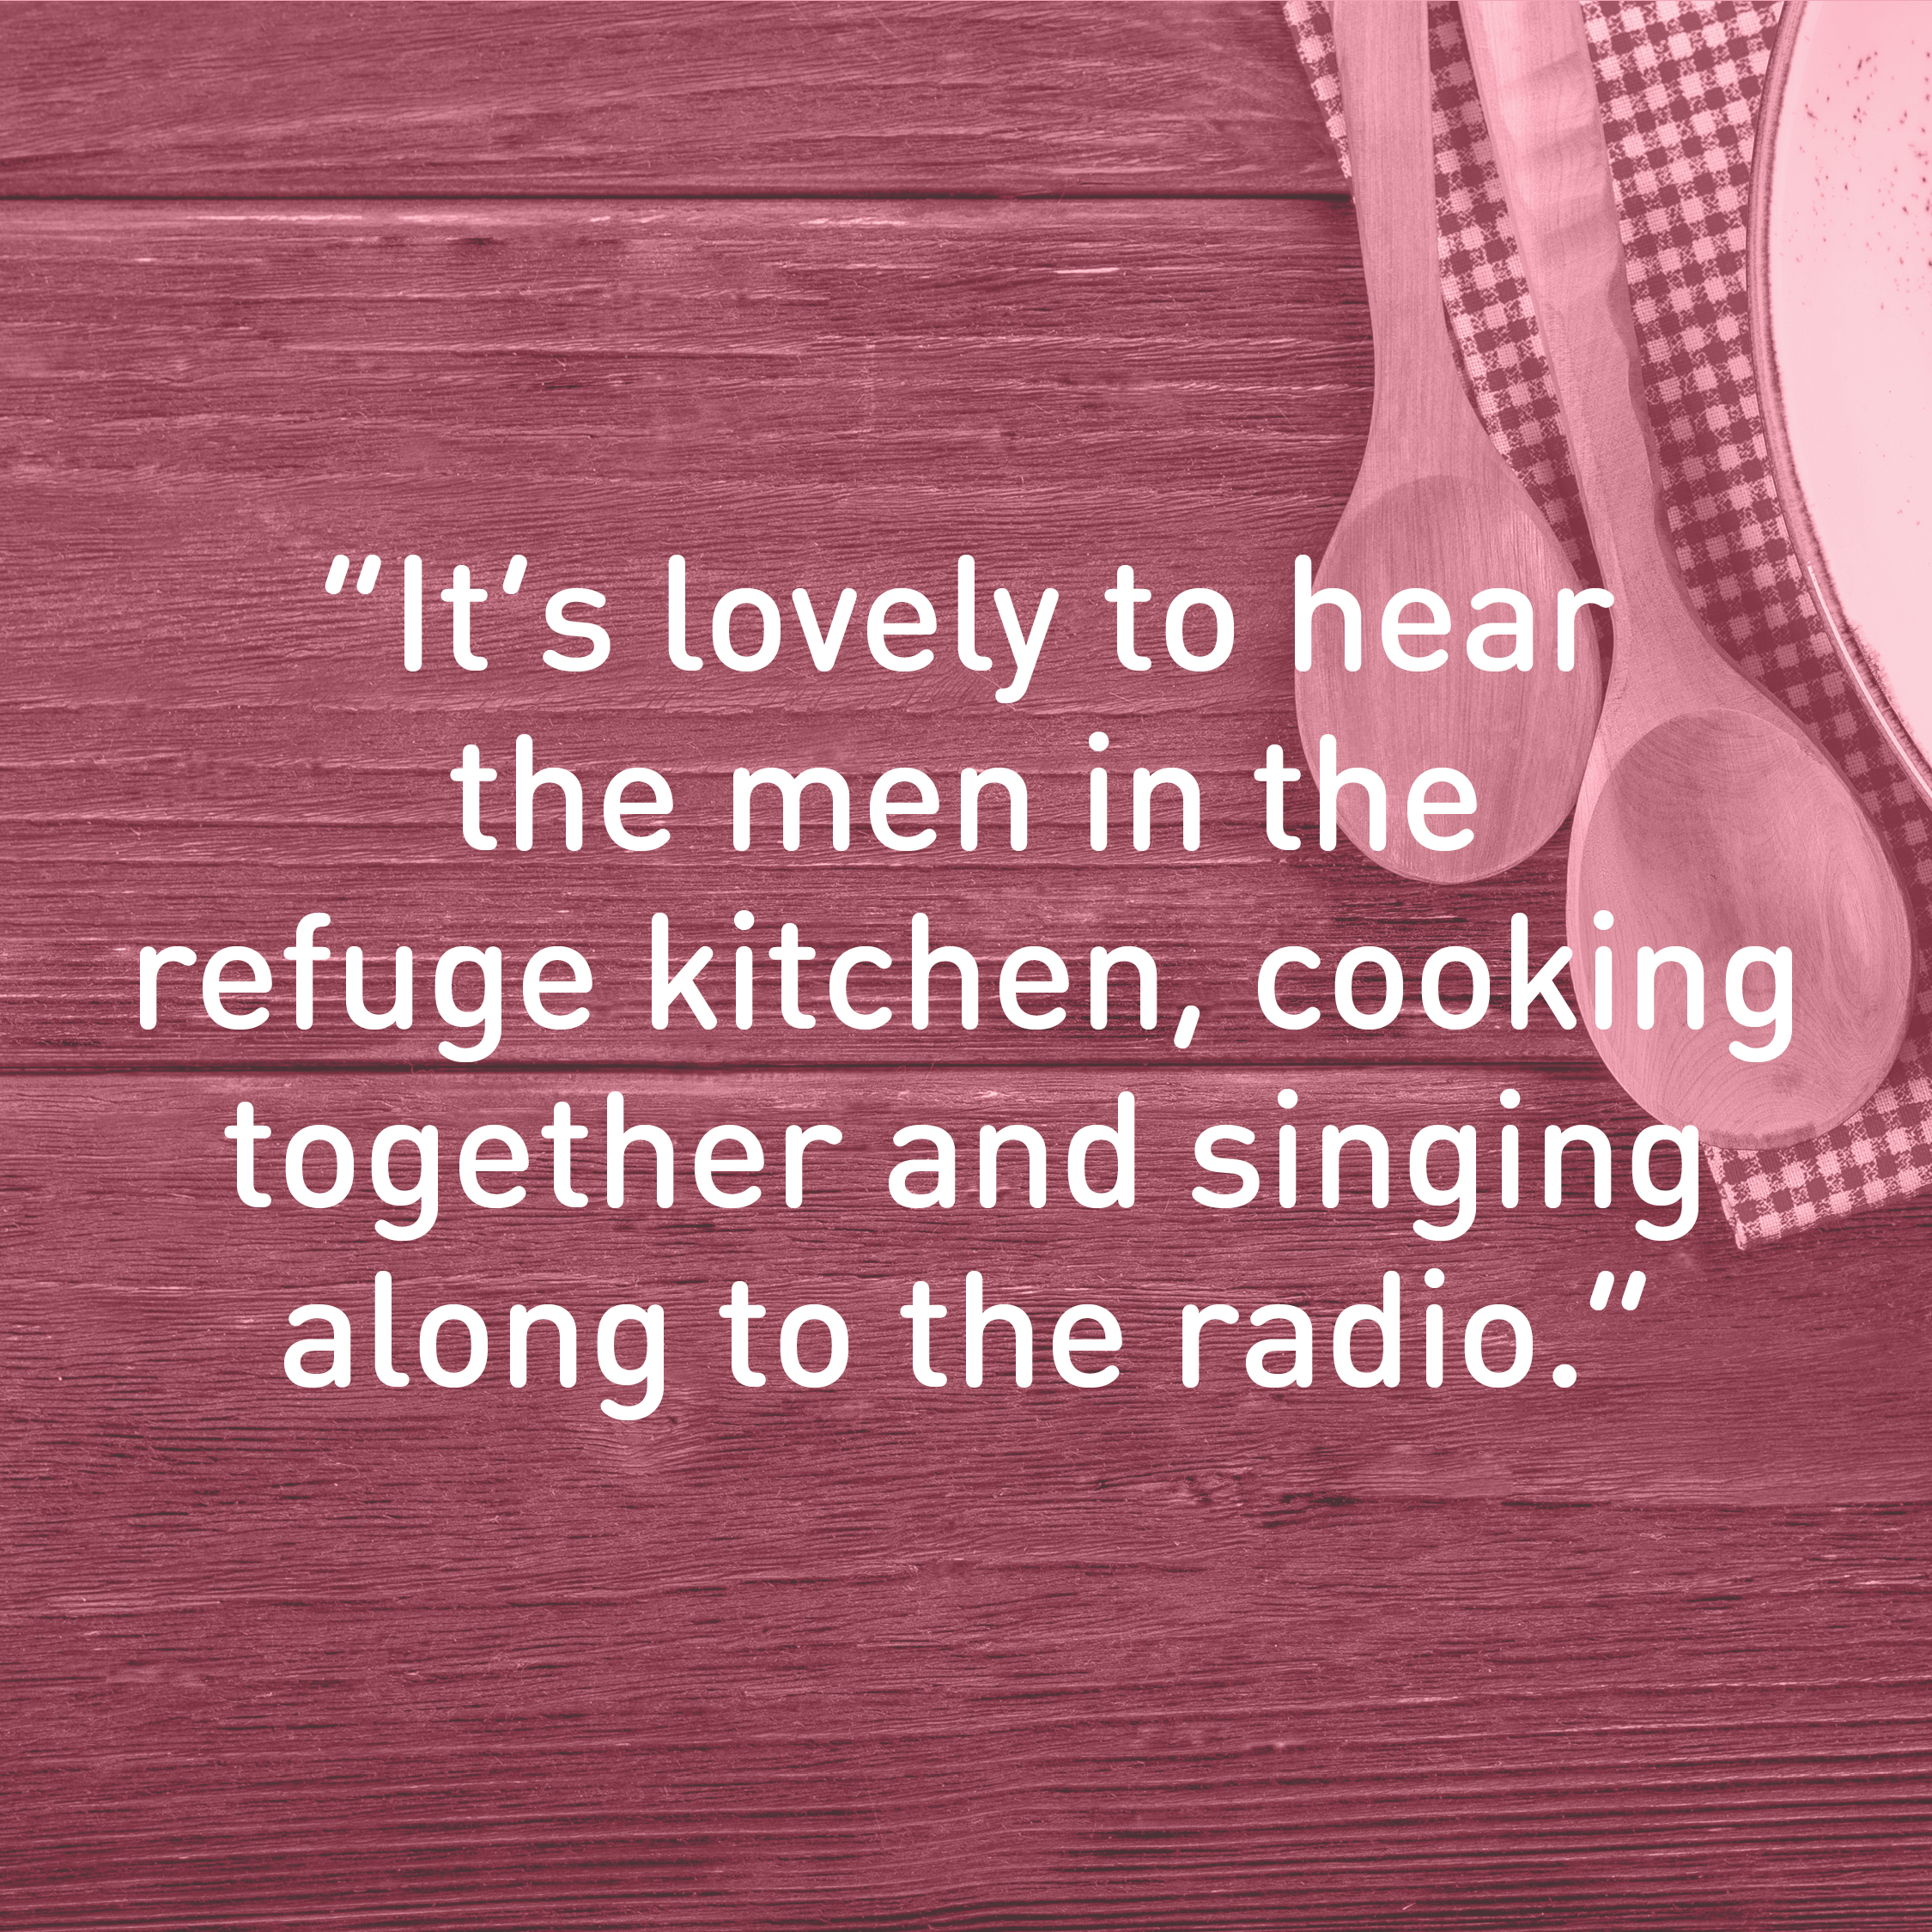 """It's lovely to hear the men in the refuge kitchen, cooking together and singing along to the radio."""